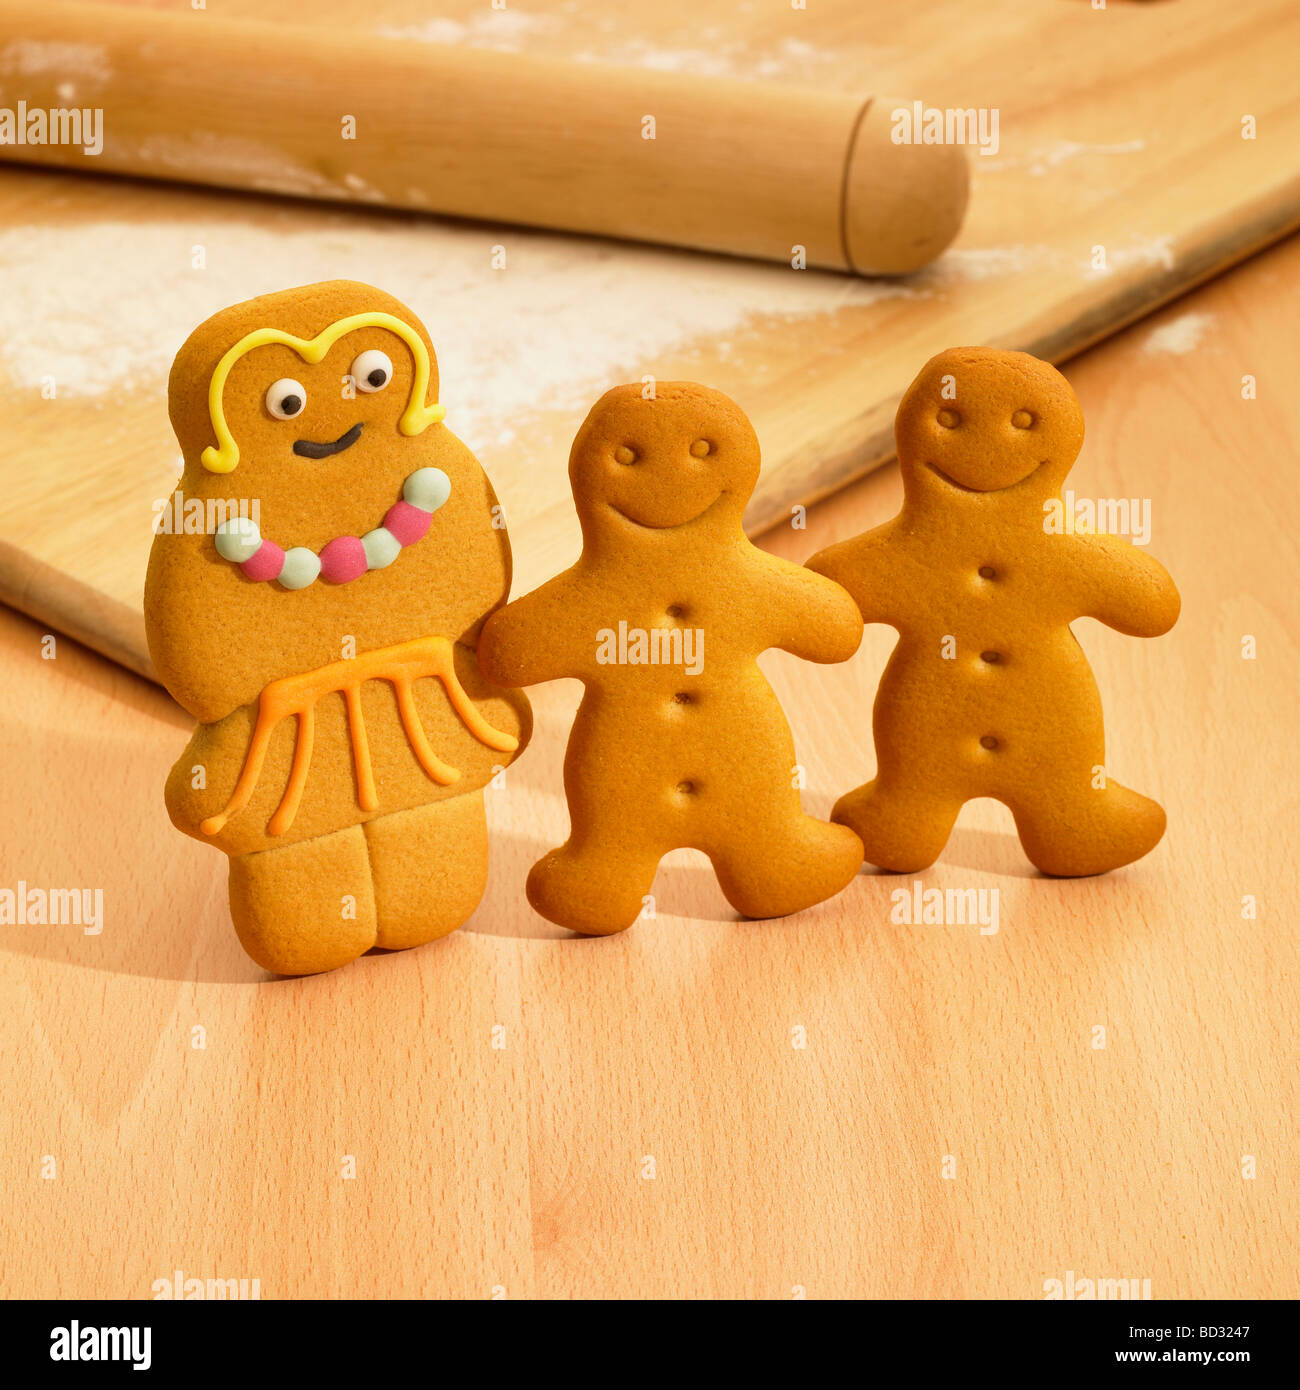 Gingerbread Men. - Stock Image